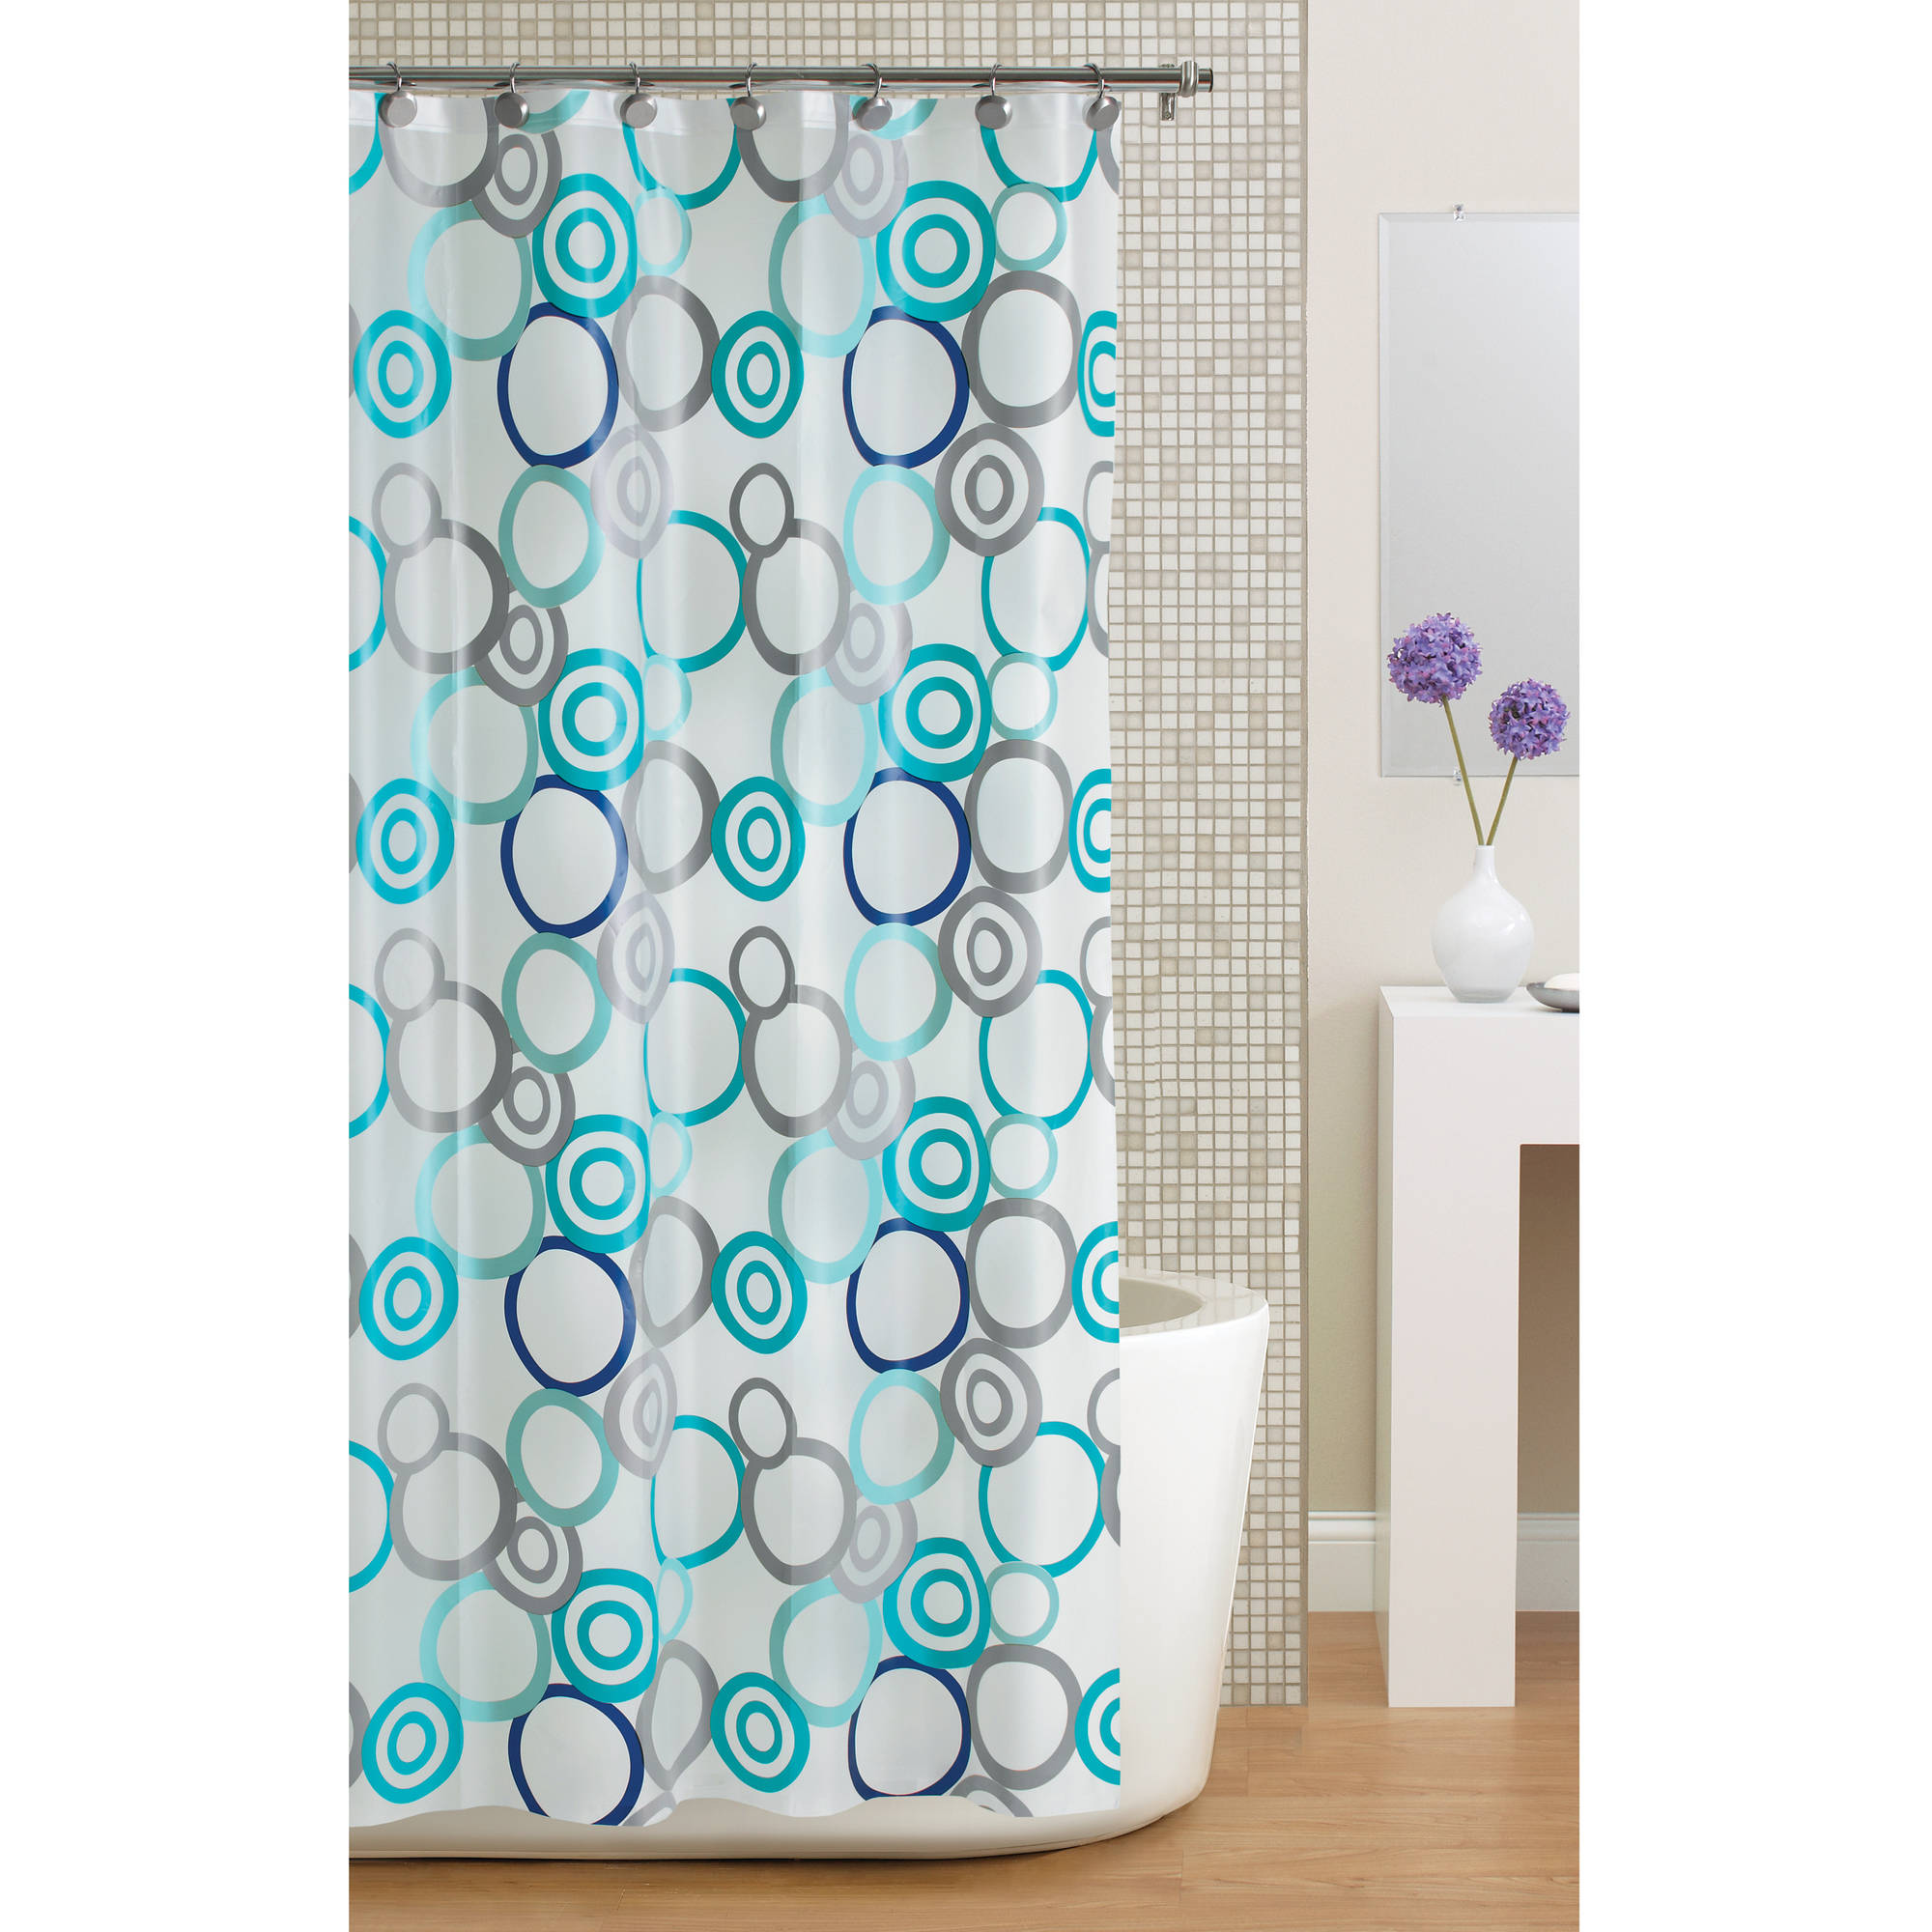 Mainstays Circles PEVA Shower Curtain, Frosty